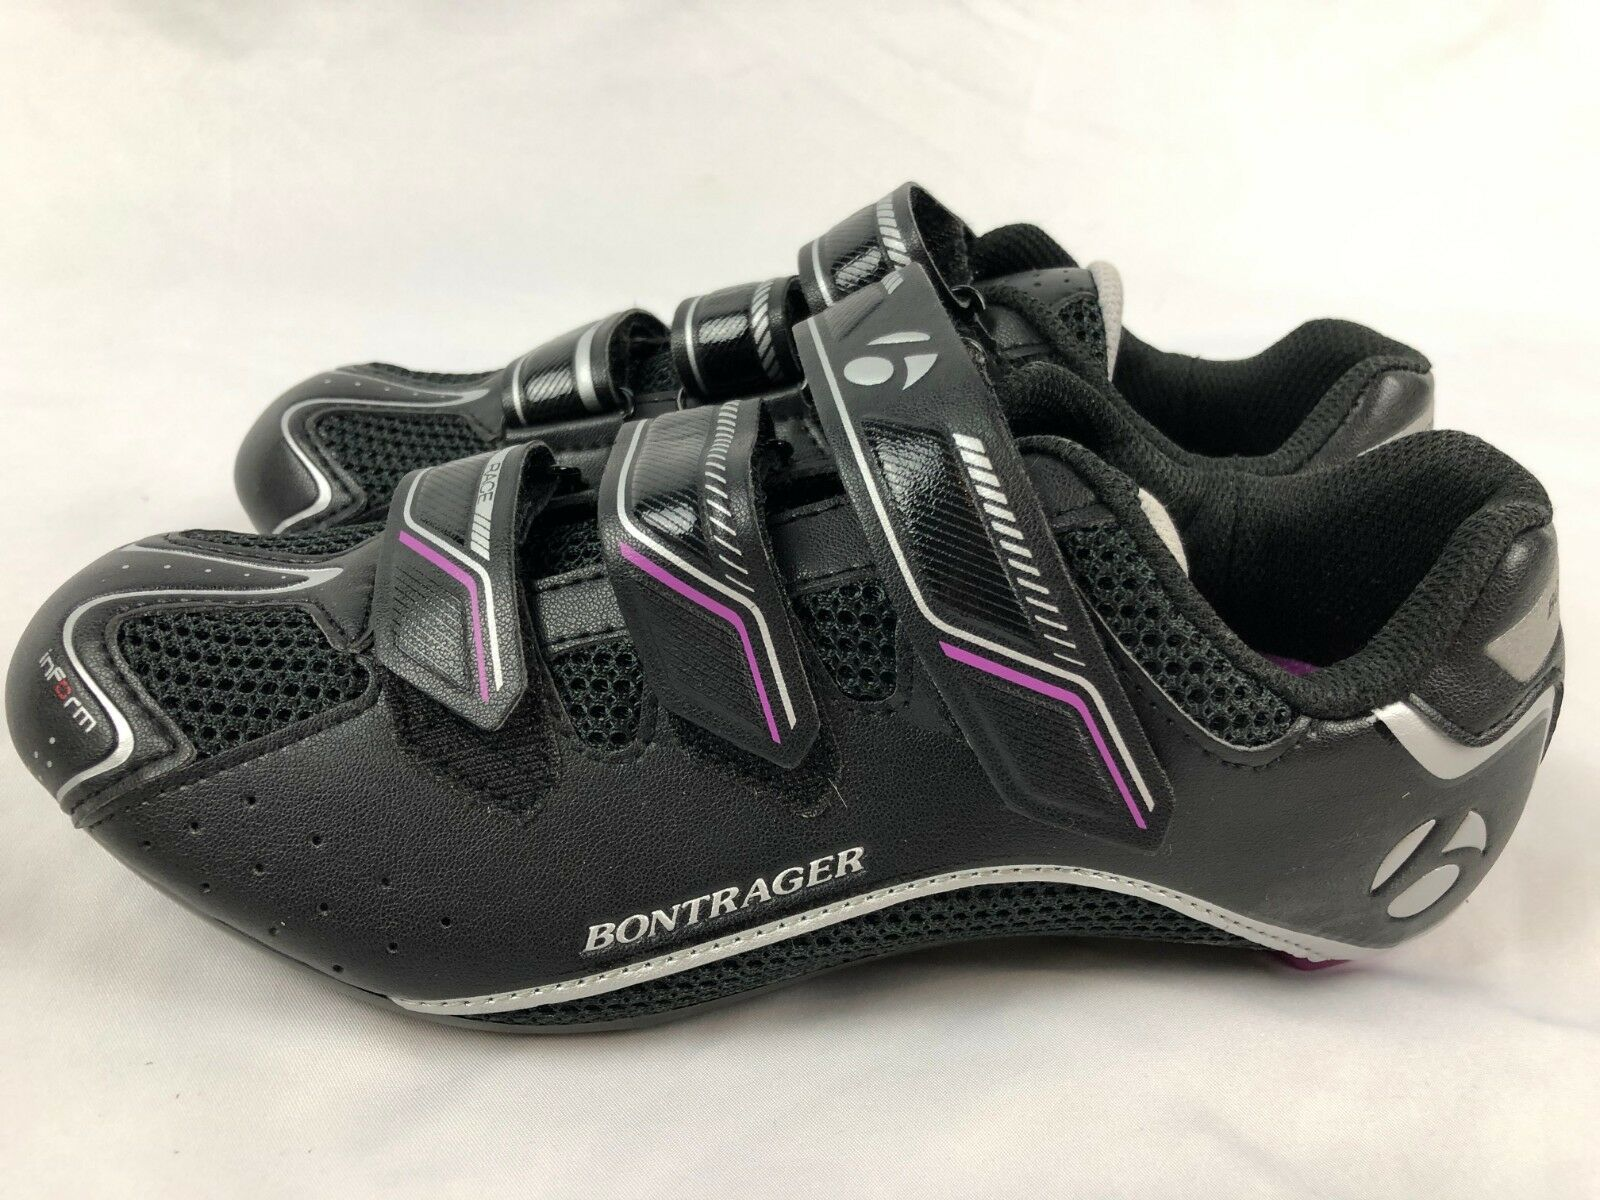 Bontrager Race strada Wouomo Cycling sautope Dimensione US 5.5 (3k)